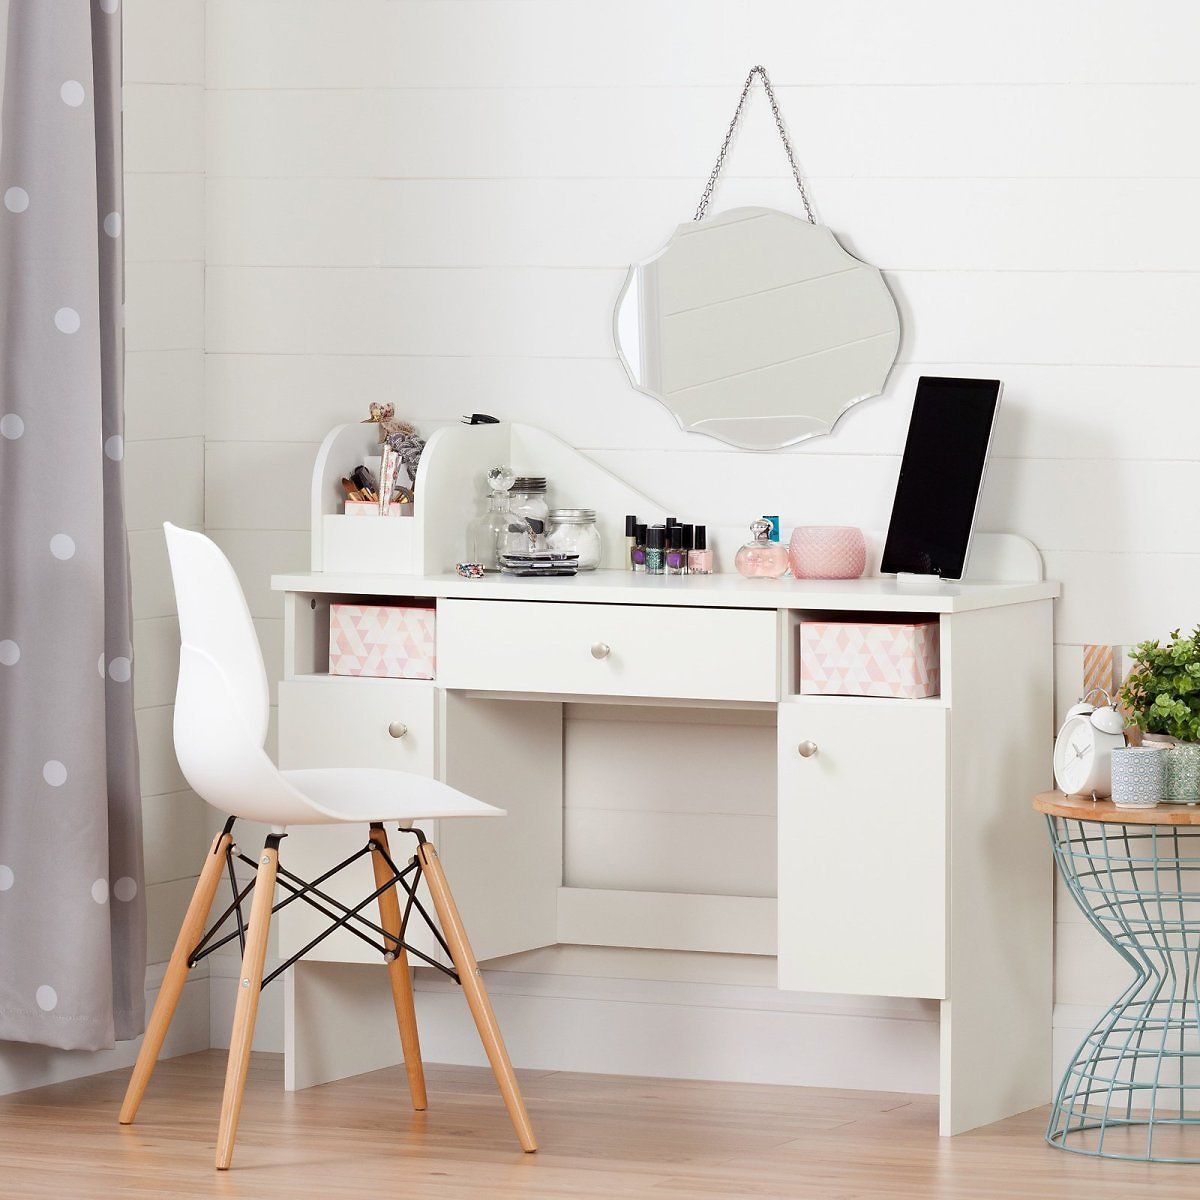 South Shore Vito Makeup Kids Desk with Drawer, White